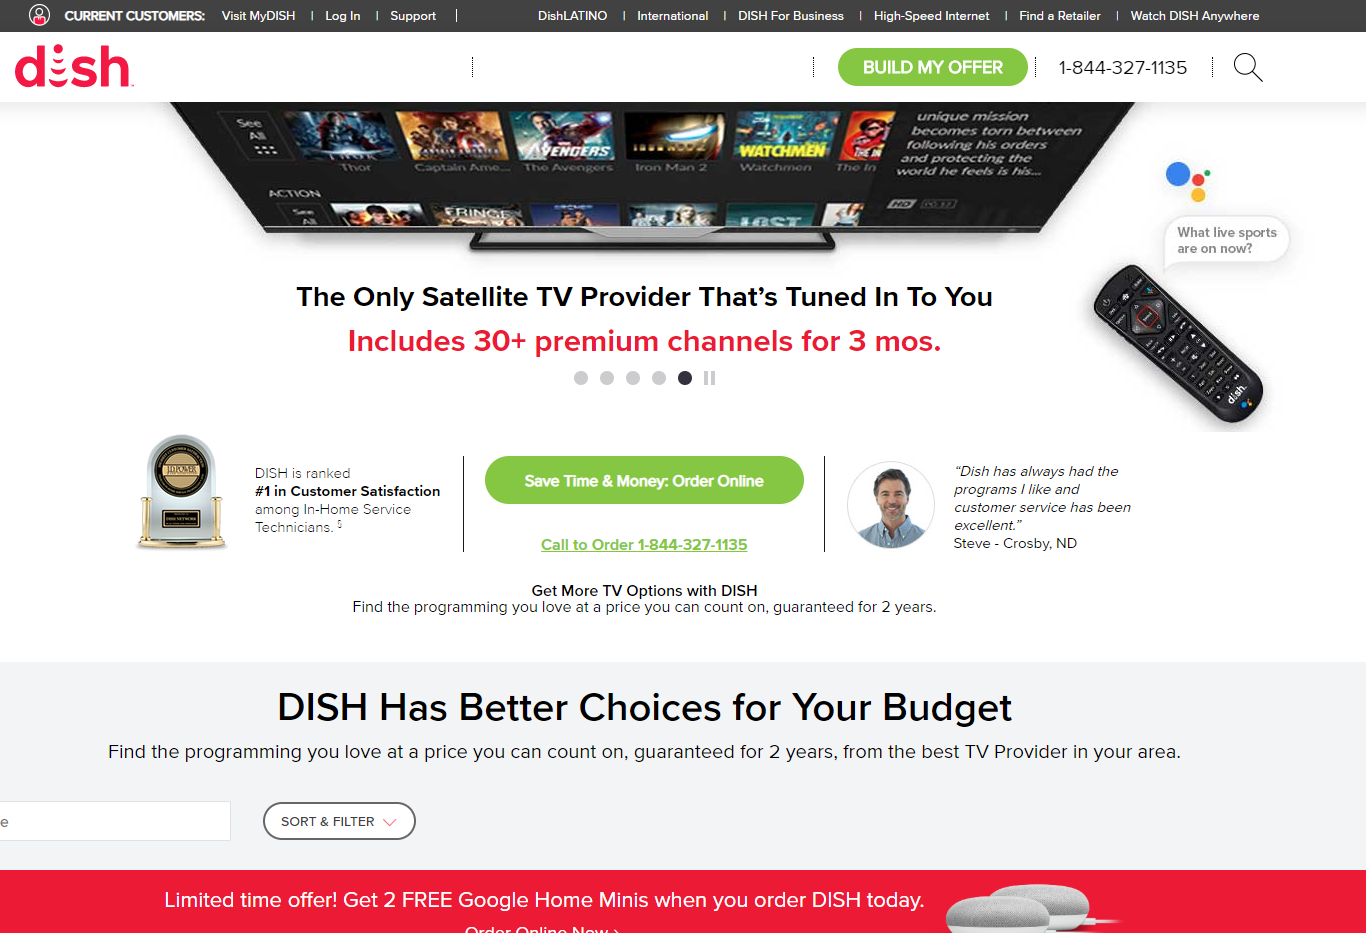 dish network deals and promotions for all customers